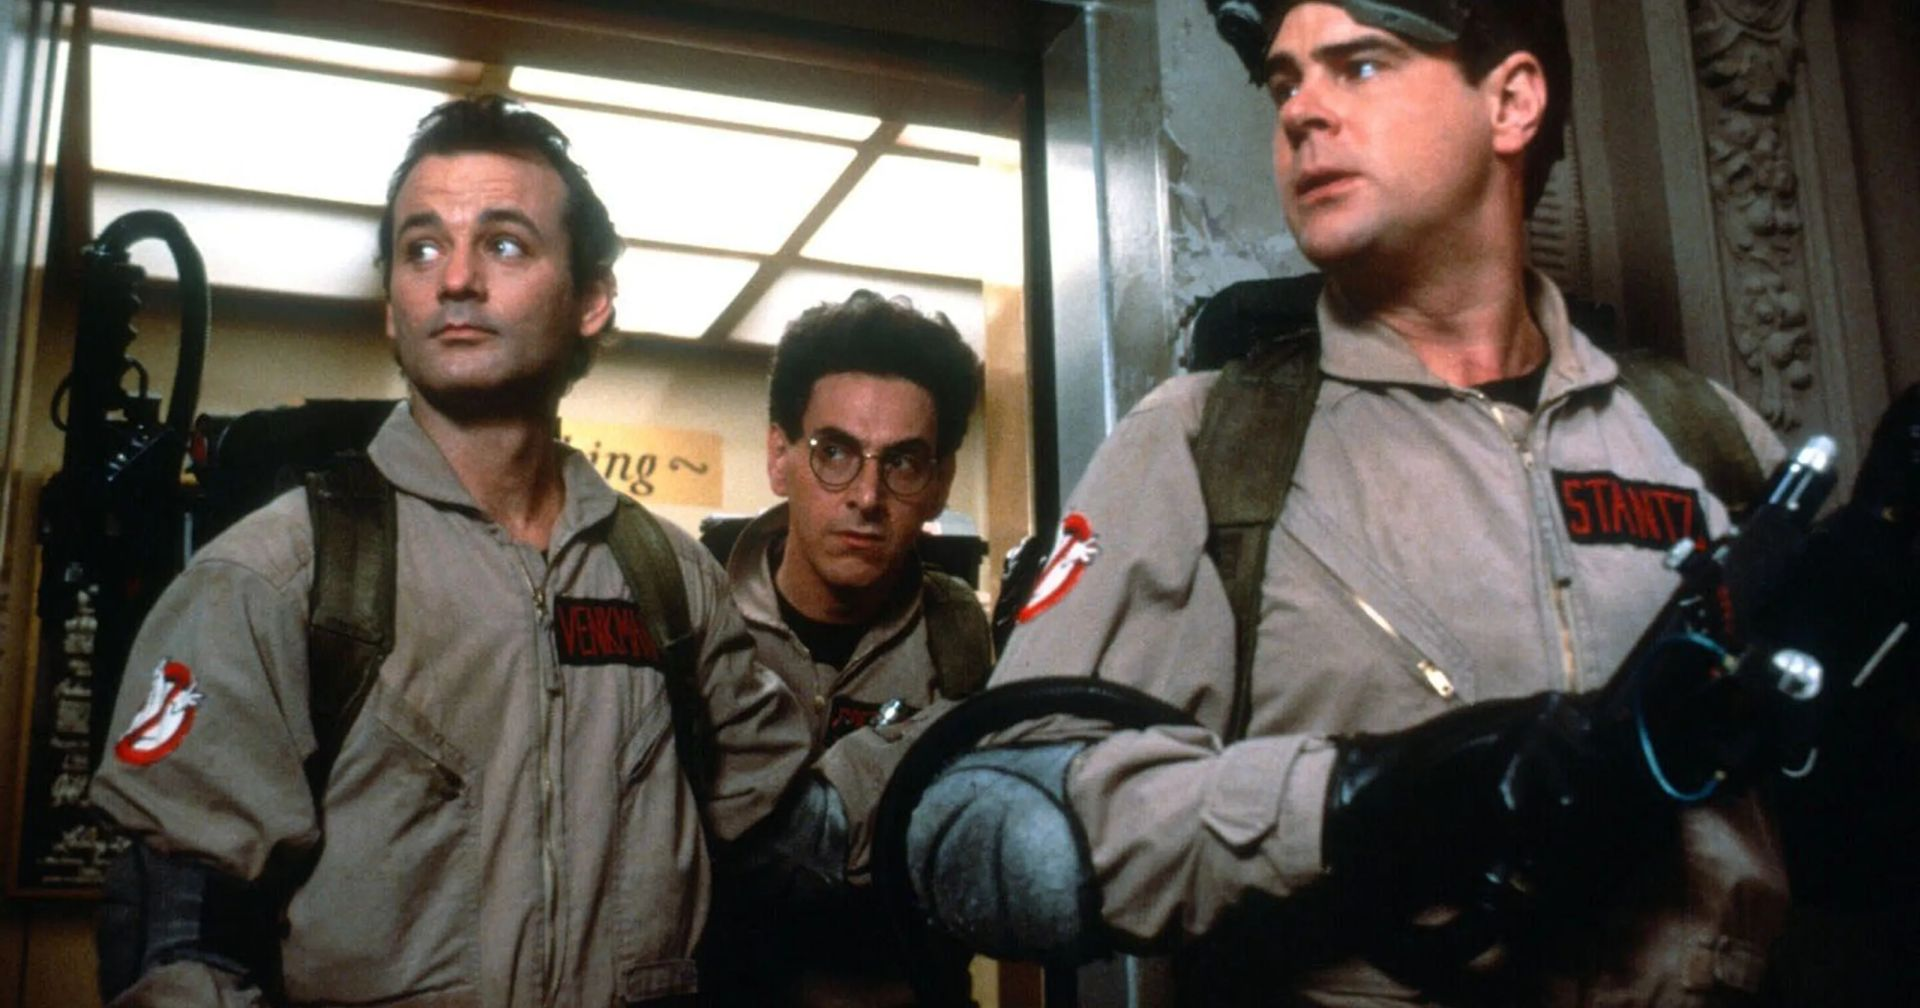 Hasbro Now Has the Master Toy License for GHOSTBUSTERS